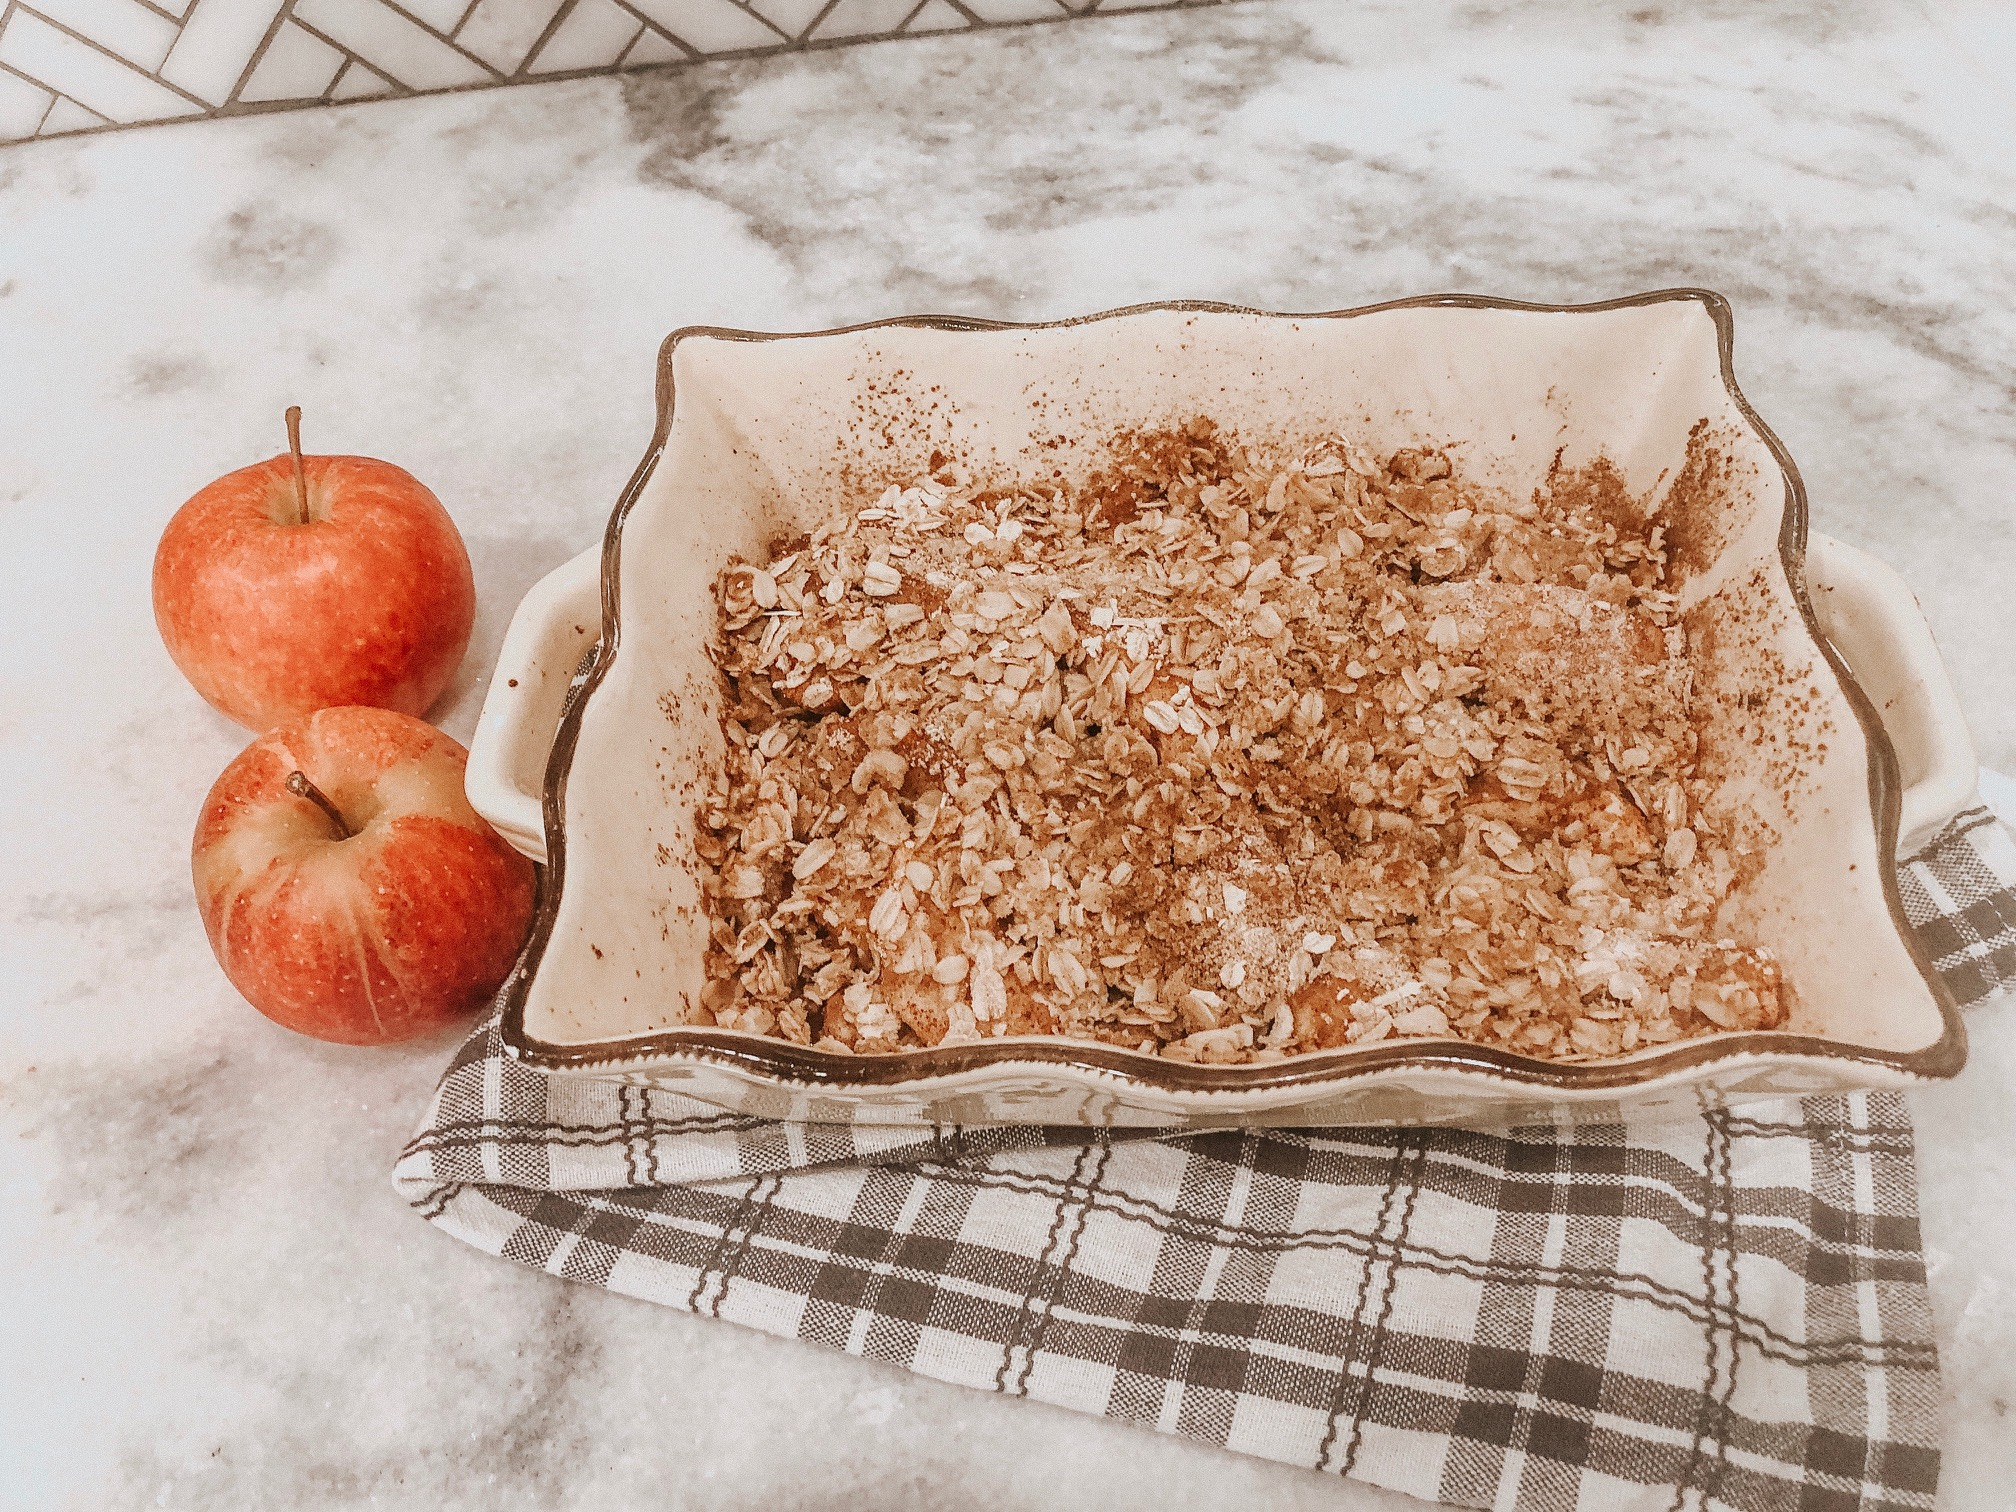 Daily Splendor Life and Style Blog | Healthy(ish) Apple Crumble Recipe #apples #applecrumble #fallrecipes #easyapplecrumble #recipes #oattopping